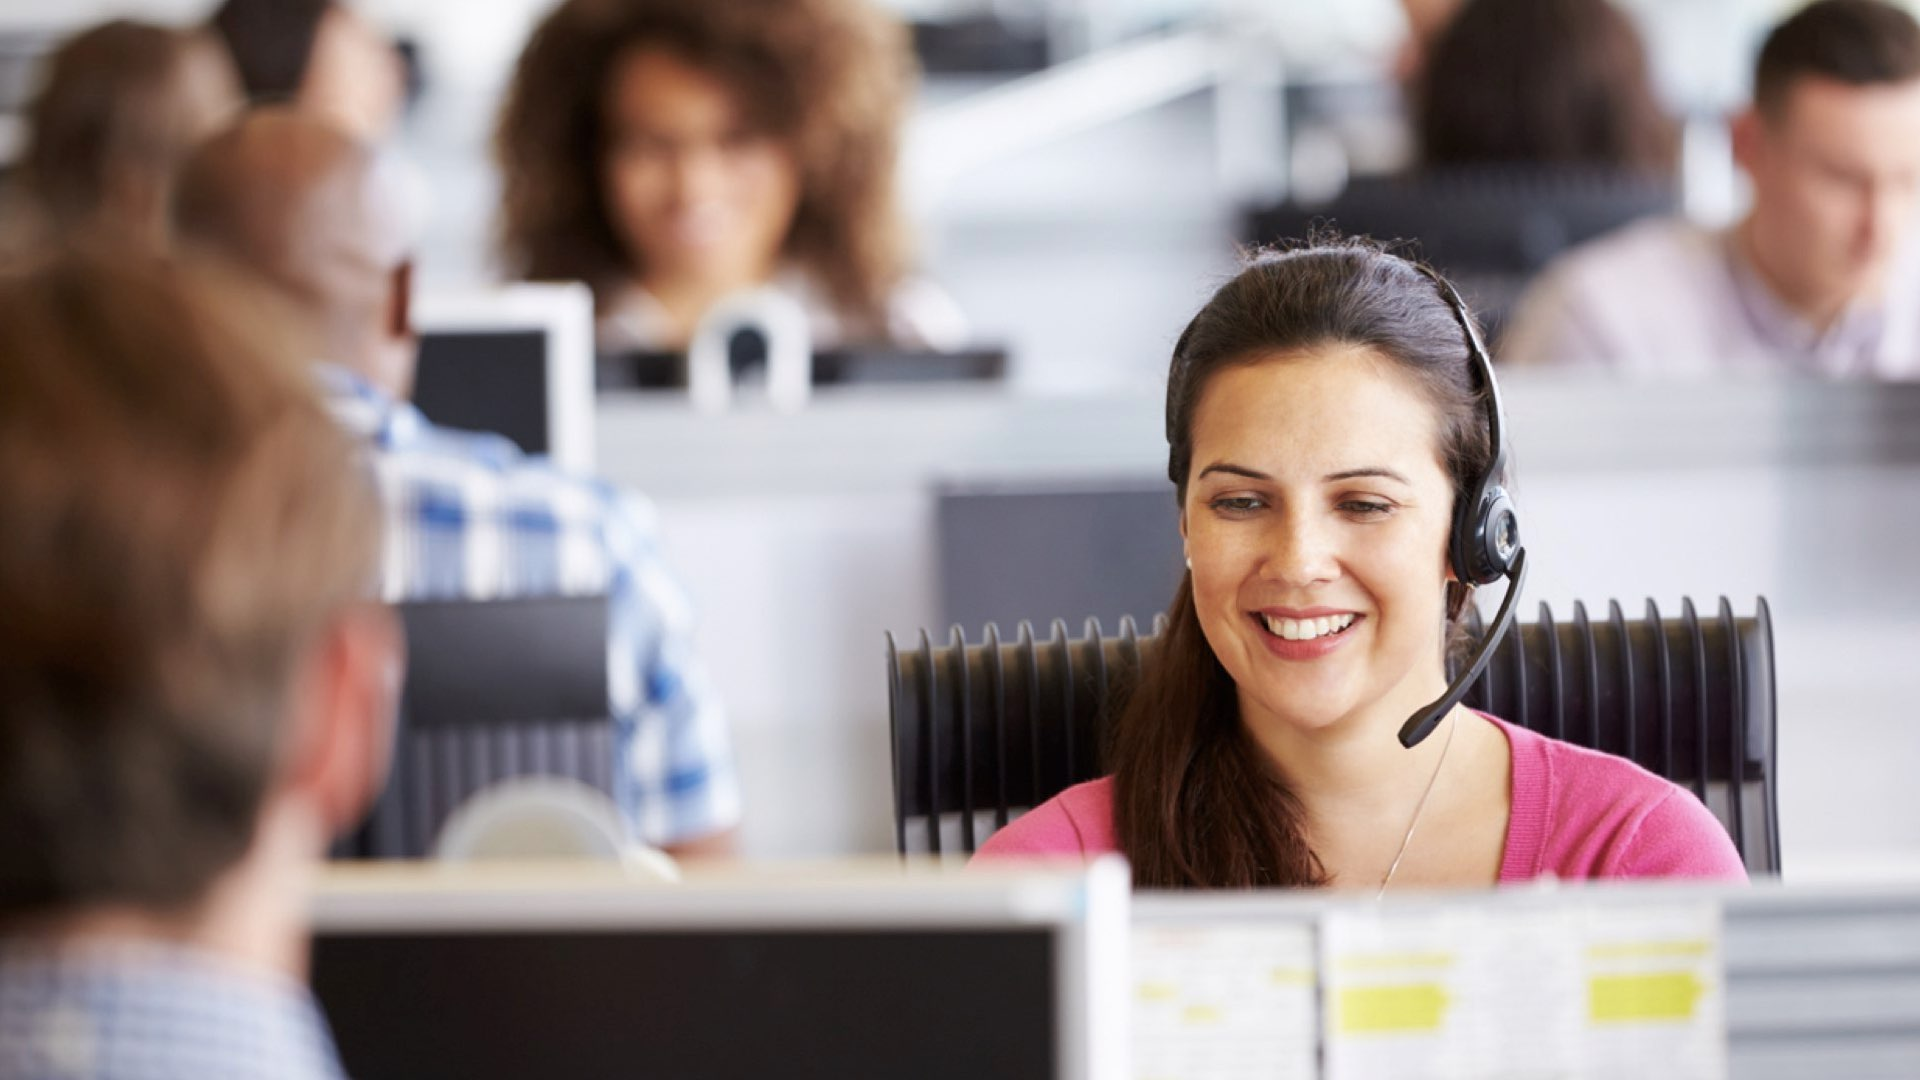 Una apuesta por la Revolución Digital en el Contact Center